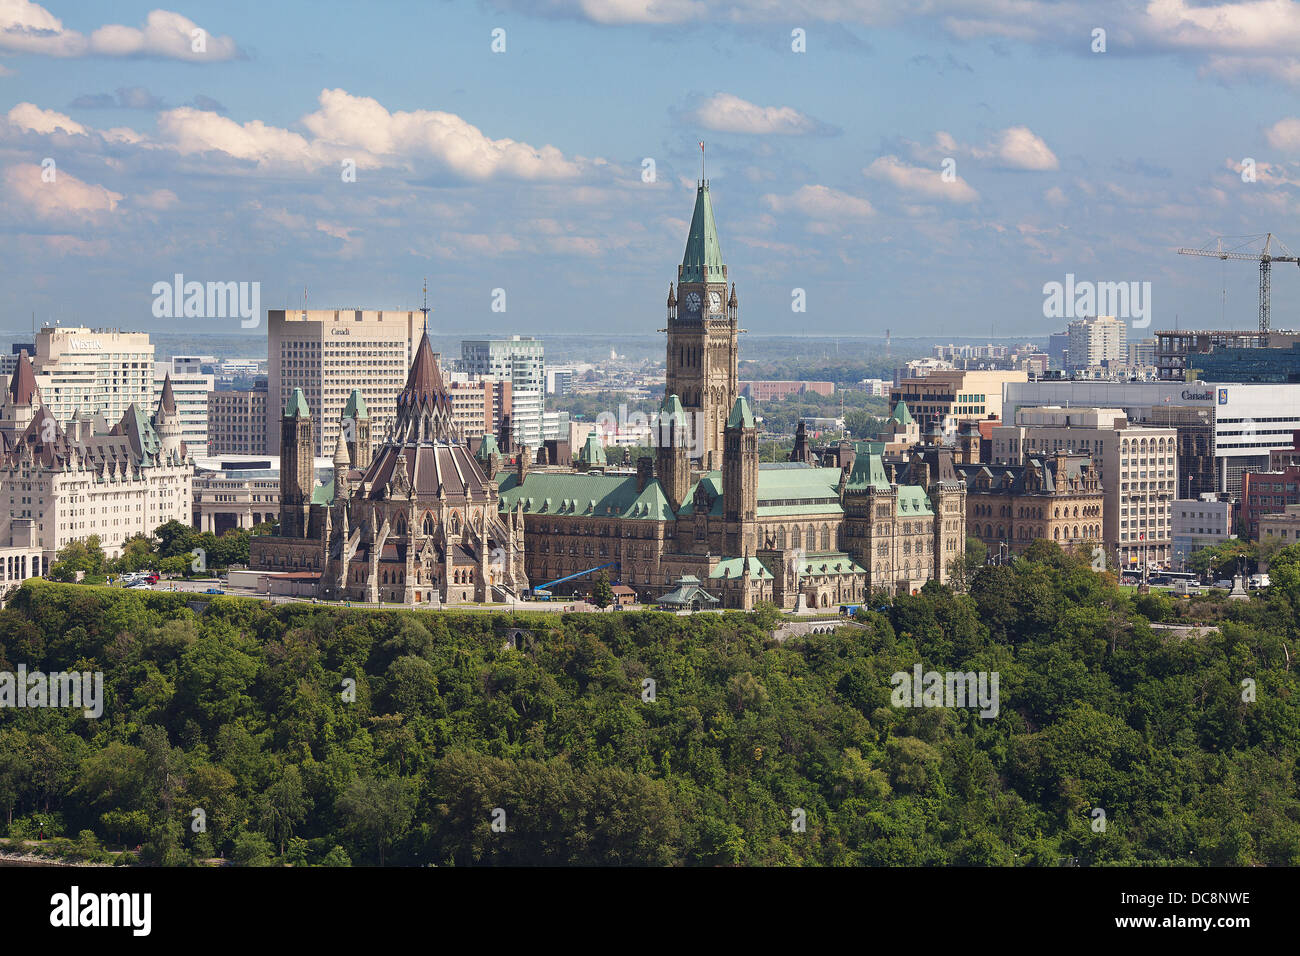 Ottawa Centre town stock images - Stock Image